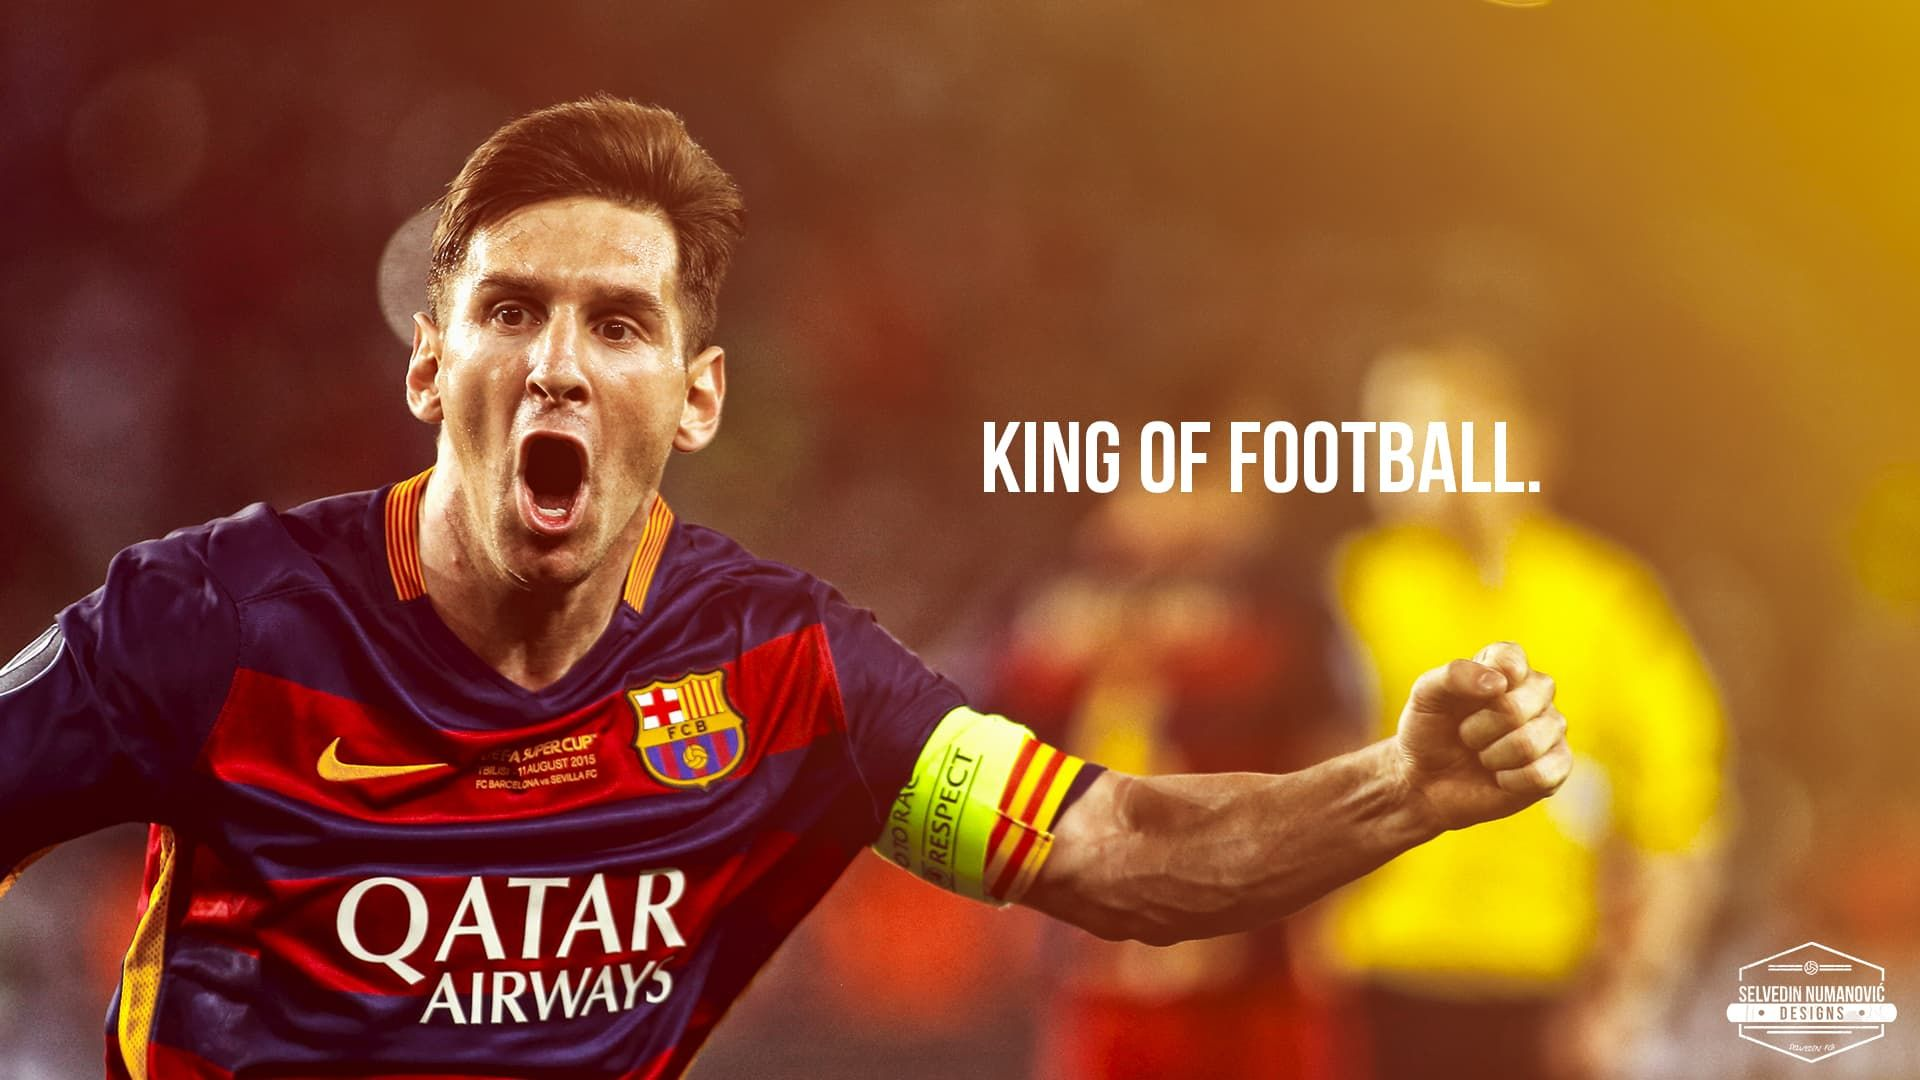 Lionel Messi Wallpaper Hd Collection Is The Most Beautiful Computer Http Mcmimages Com Lionel Messi Wallpapers Lionel Messi Messi